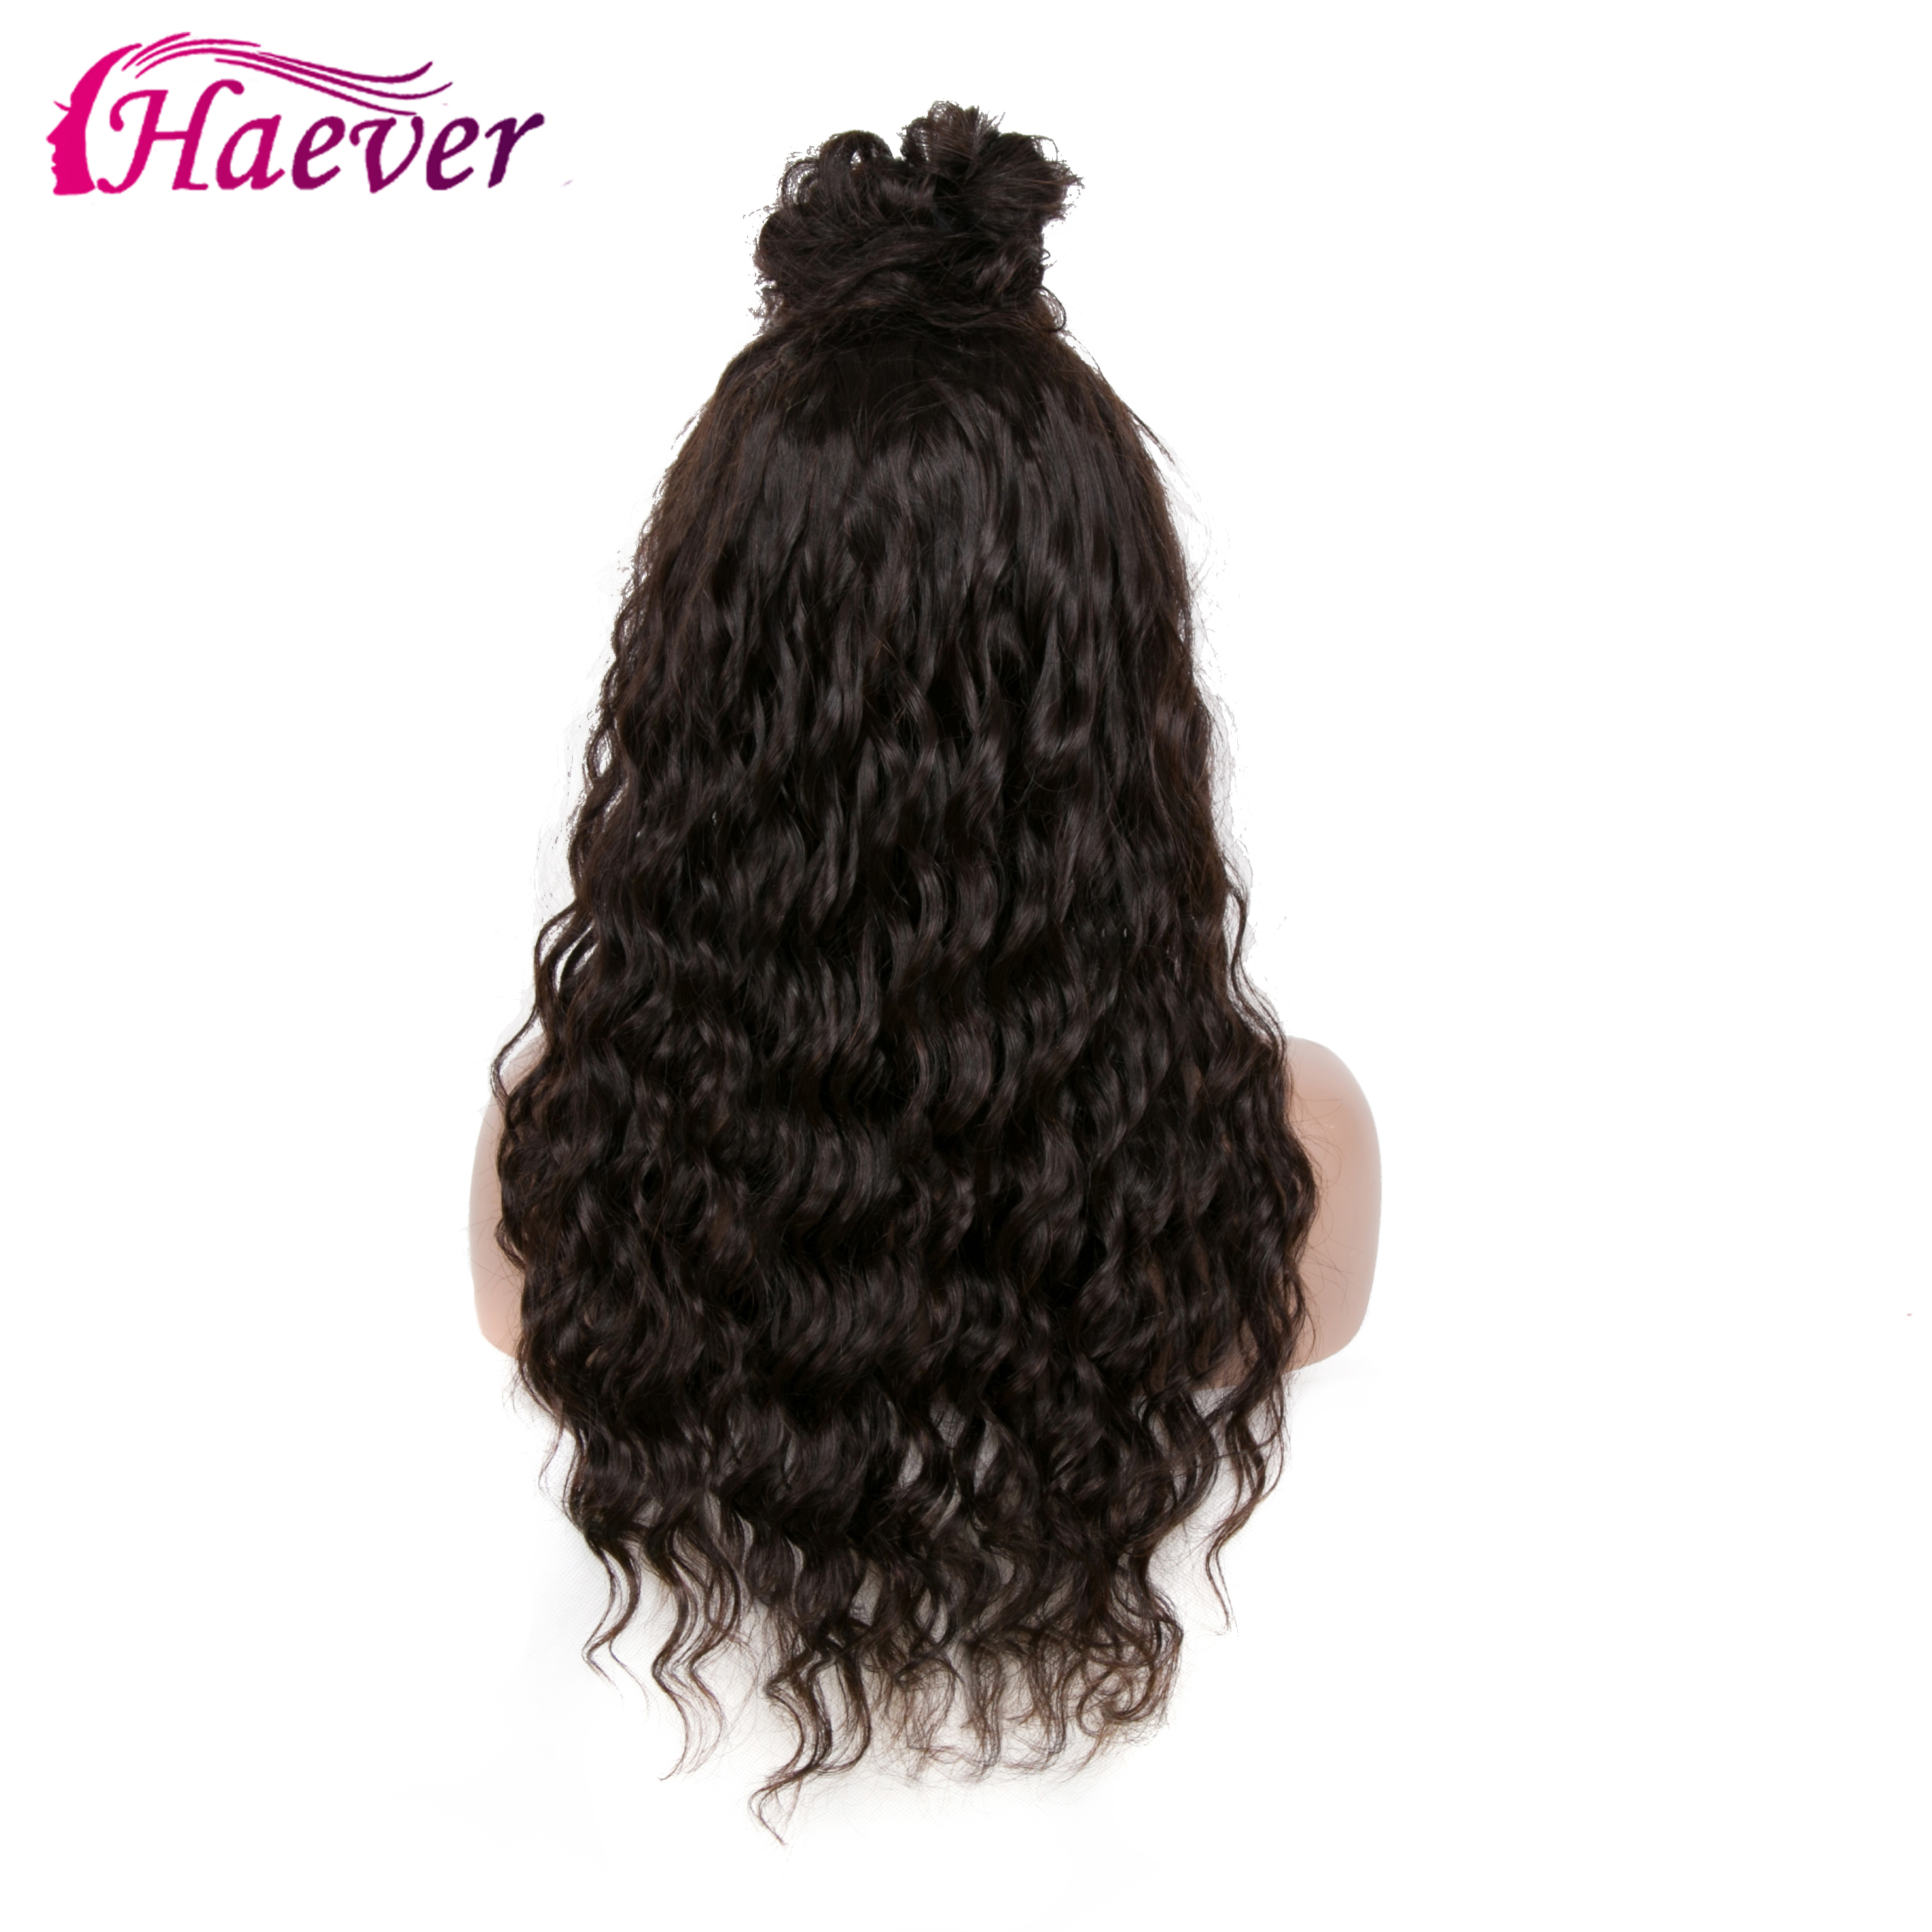 Haever 13x4 Water Wave Human Hair Lace Front Wigs New Hair Glueless Lace Wigs With Baby Hair Peruvian Wig Pre Plucked 180%  Remy